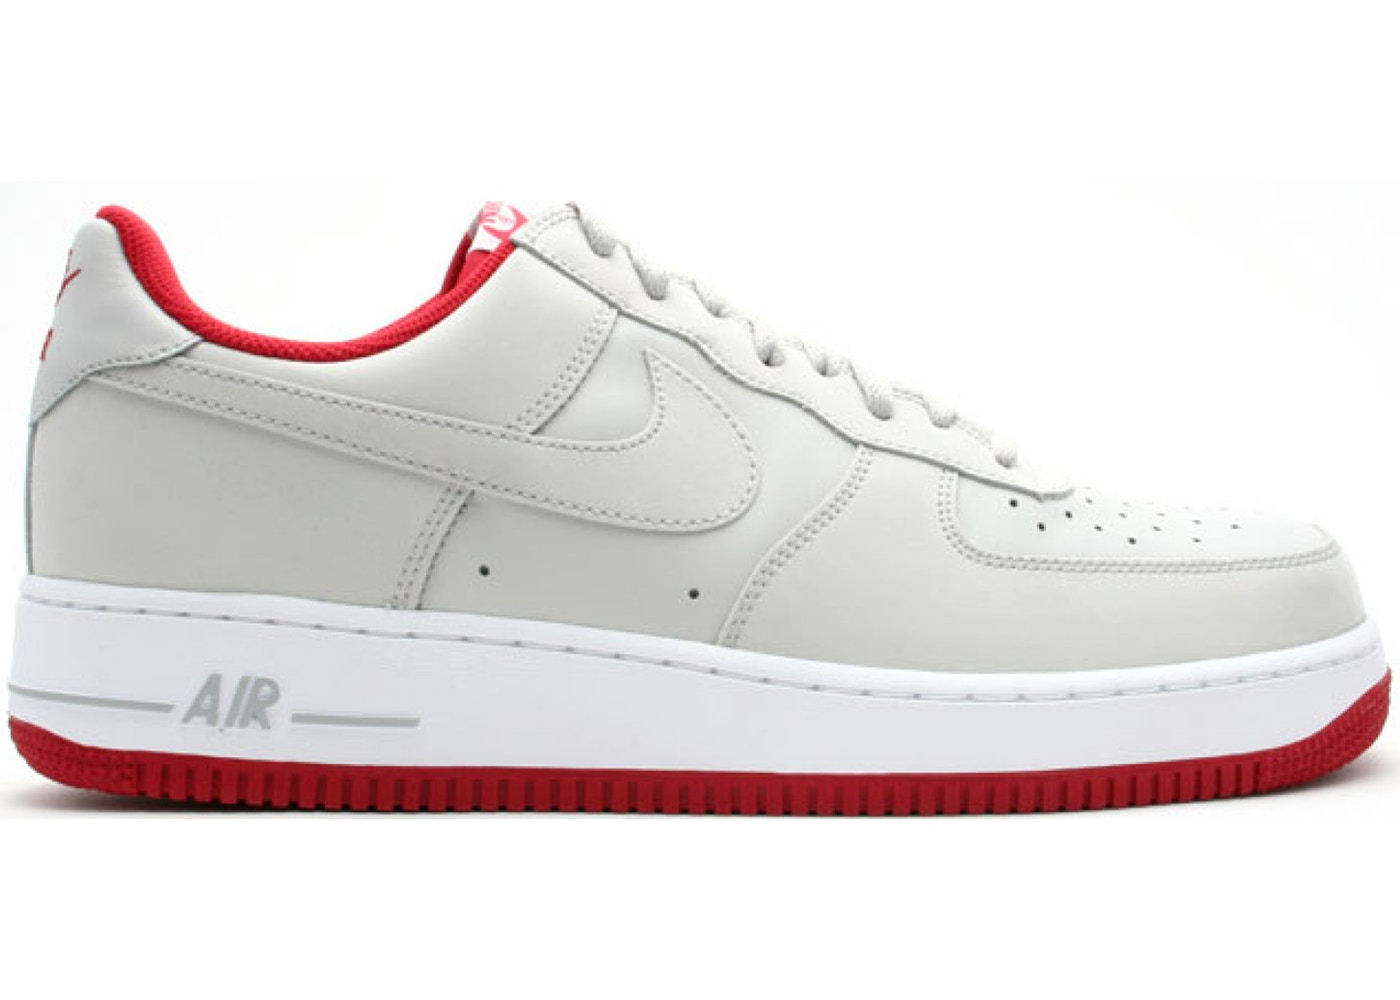 Air Force 1 Low Neutral Grey Varsity Red